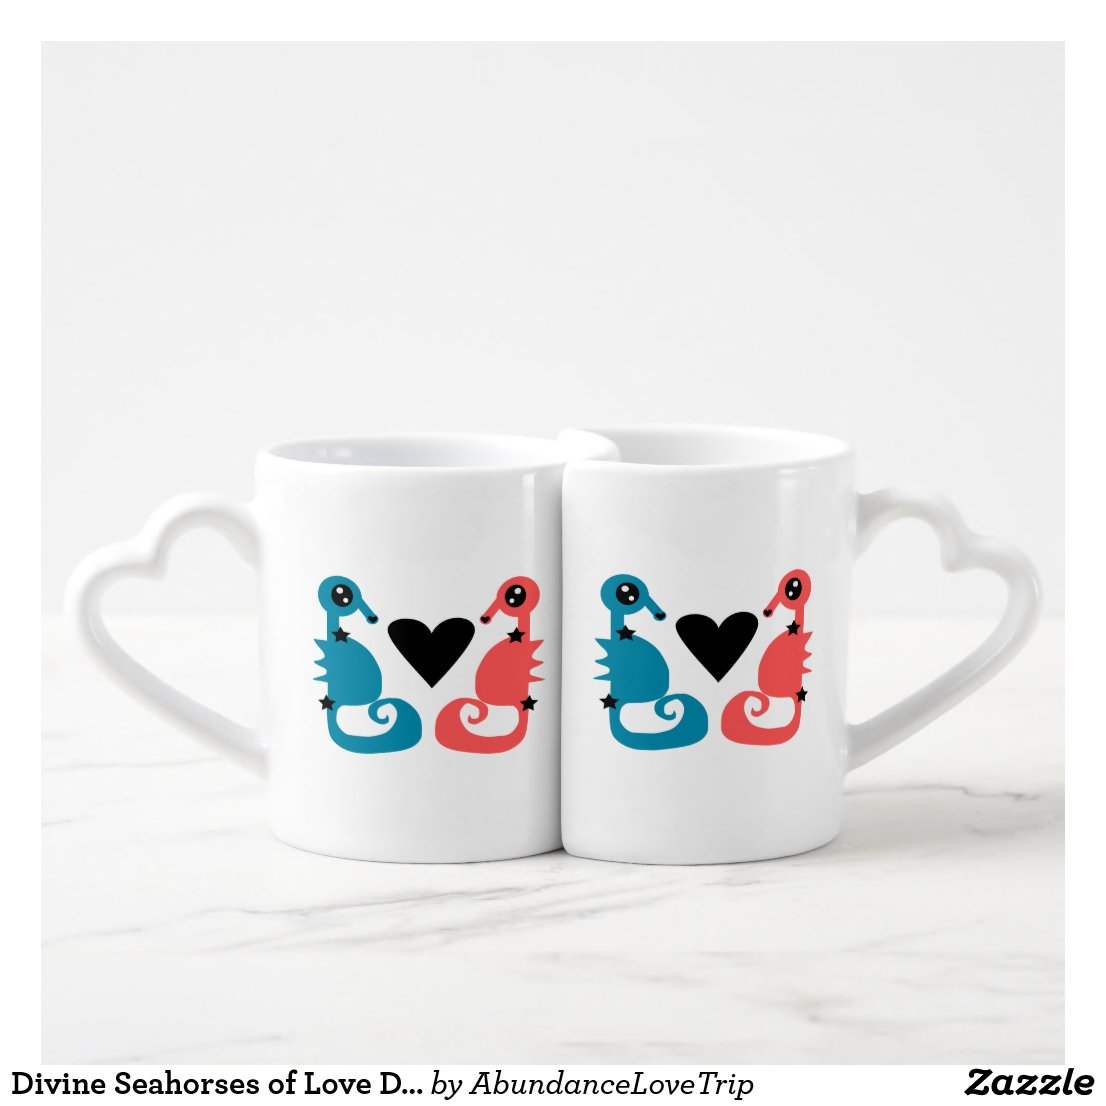 Divine Seahorses of Love Double Love Coffee Mug Set